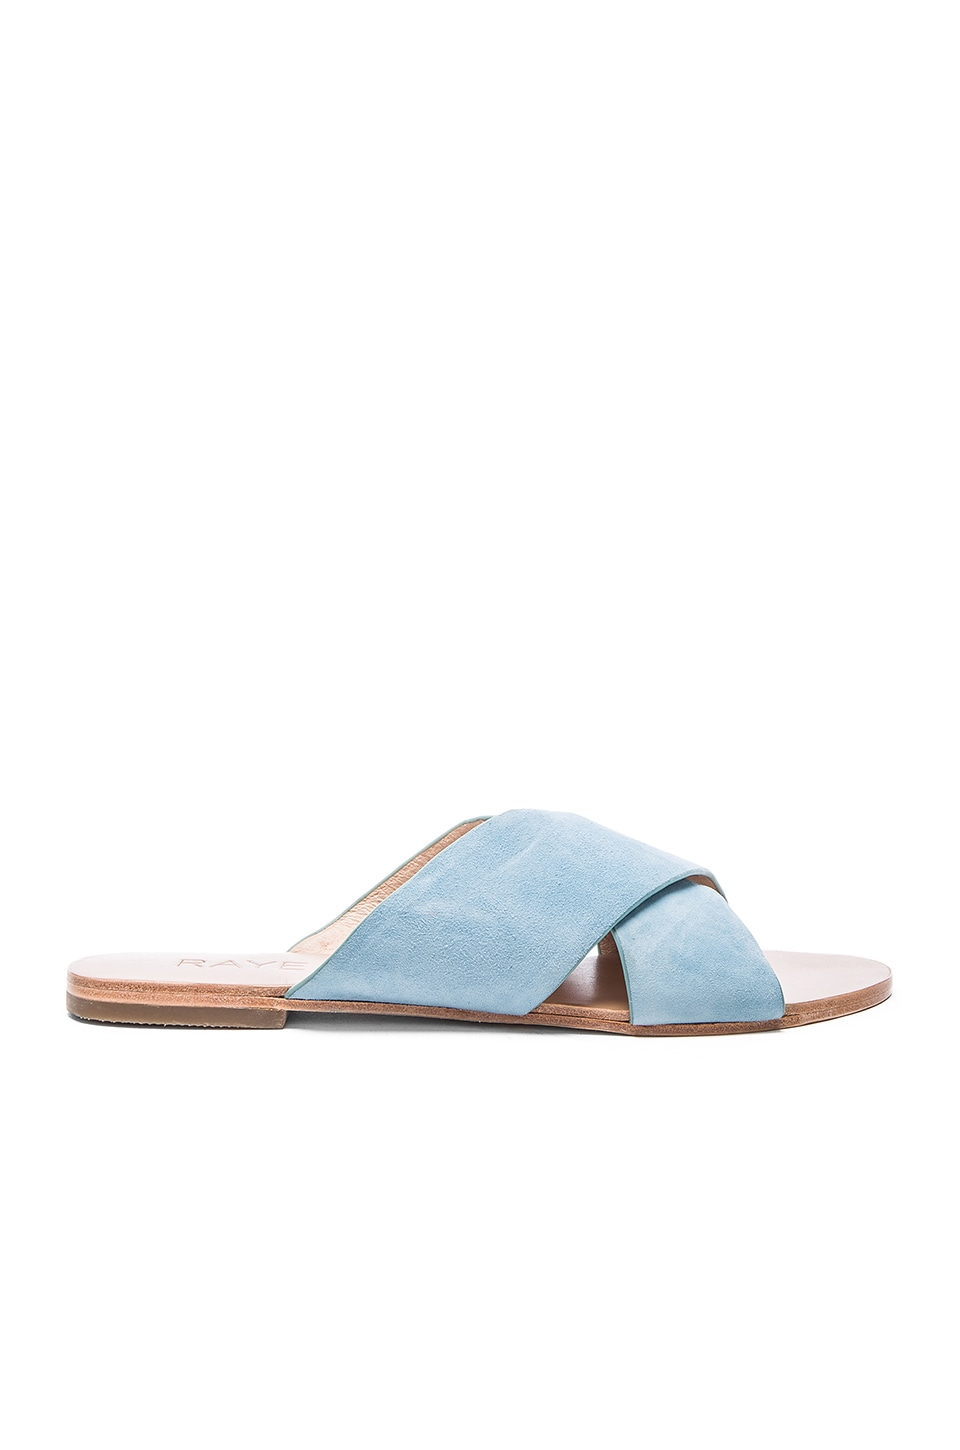 RAYE Sullivan Slide in Washed Denim